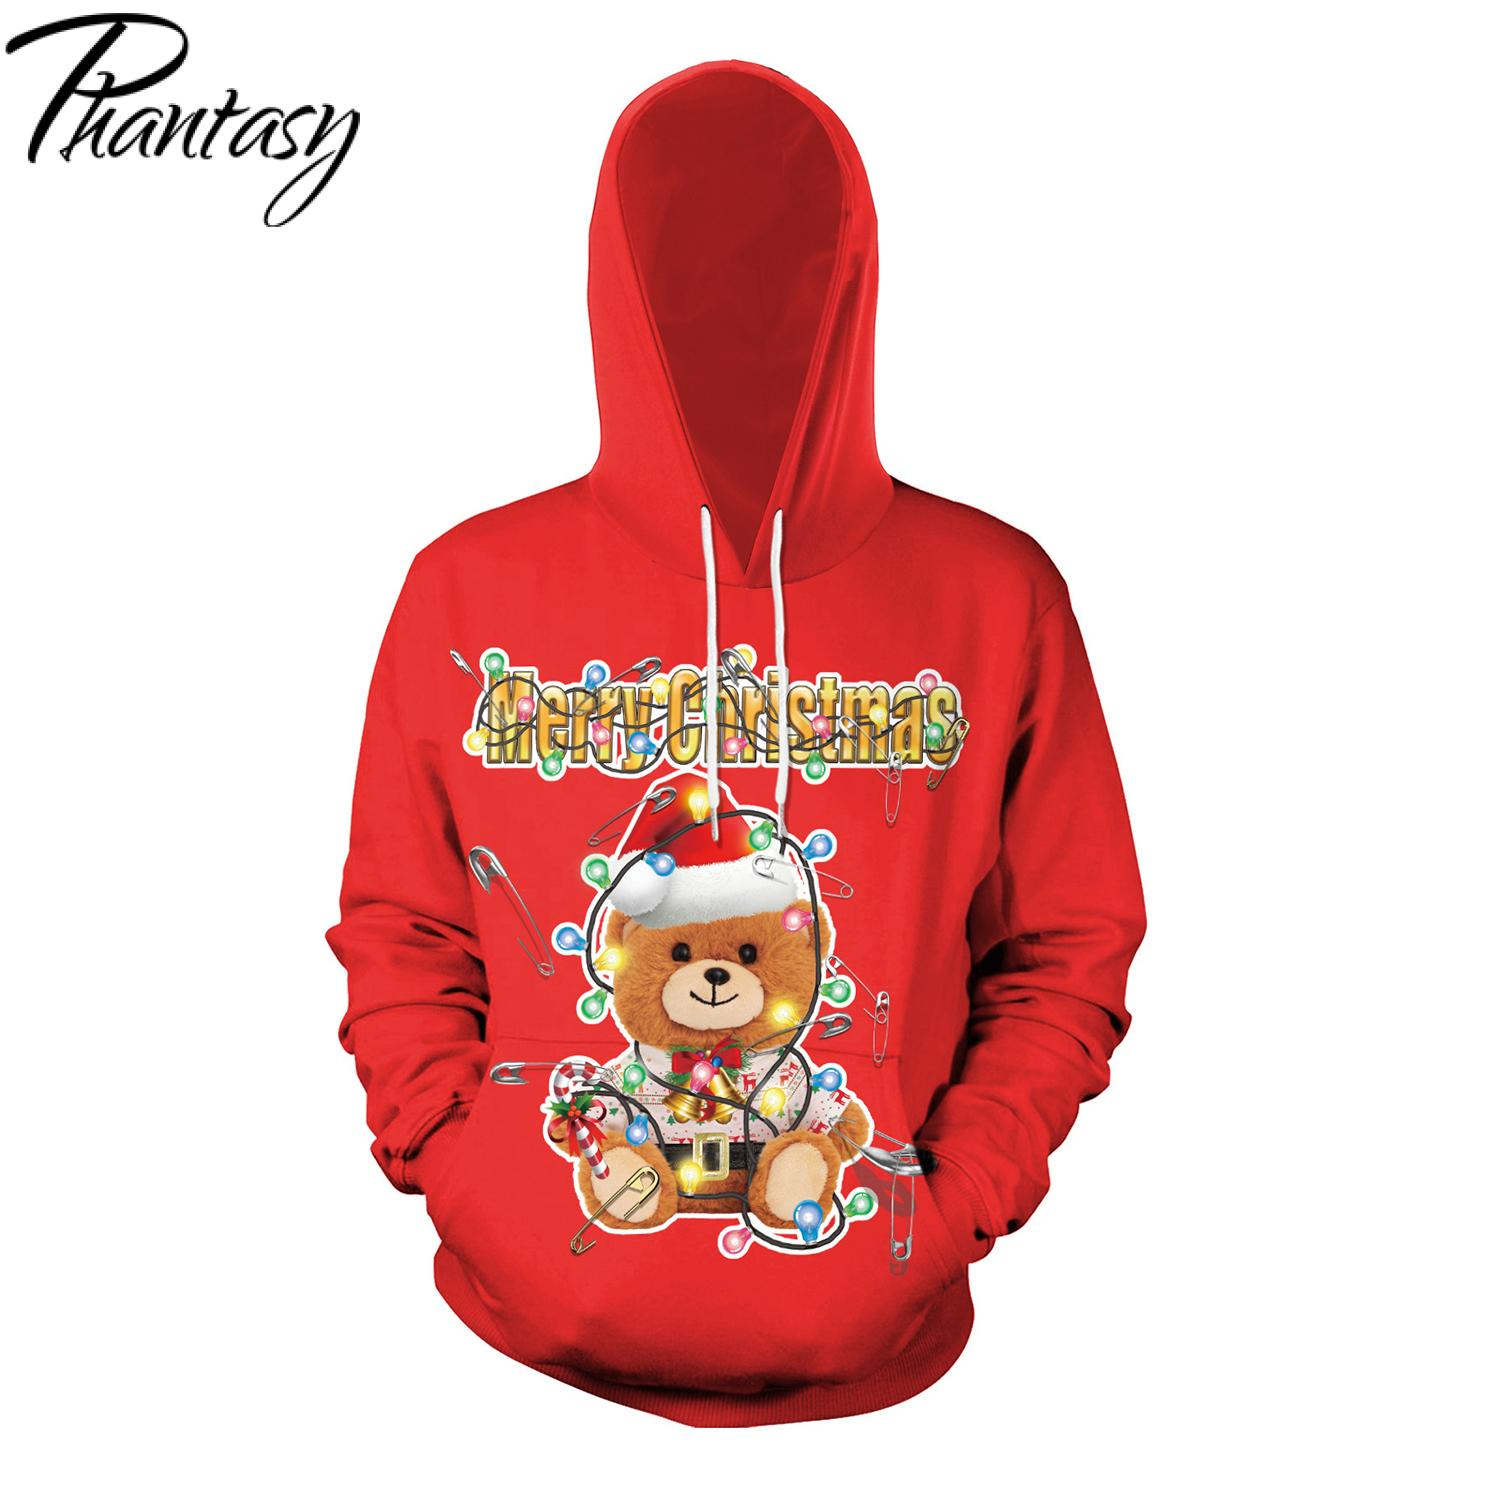 Christmas Sweatshirts 2020 Phantasy 2020 Merry Christmas Sweatshirt Women/Men Hoodie Bear